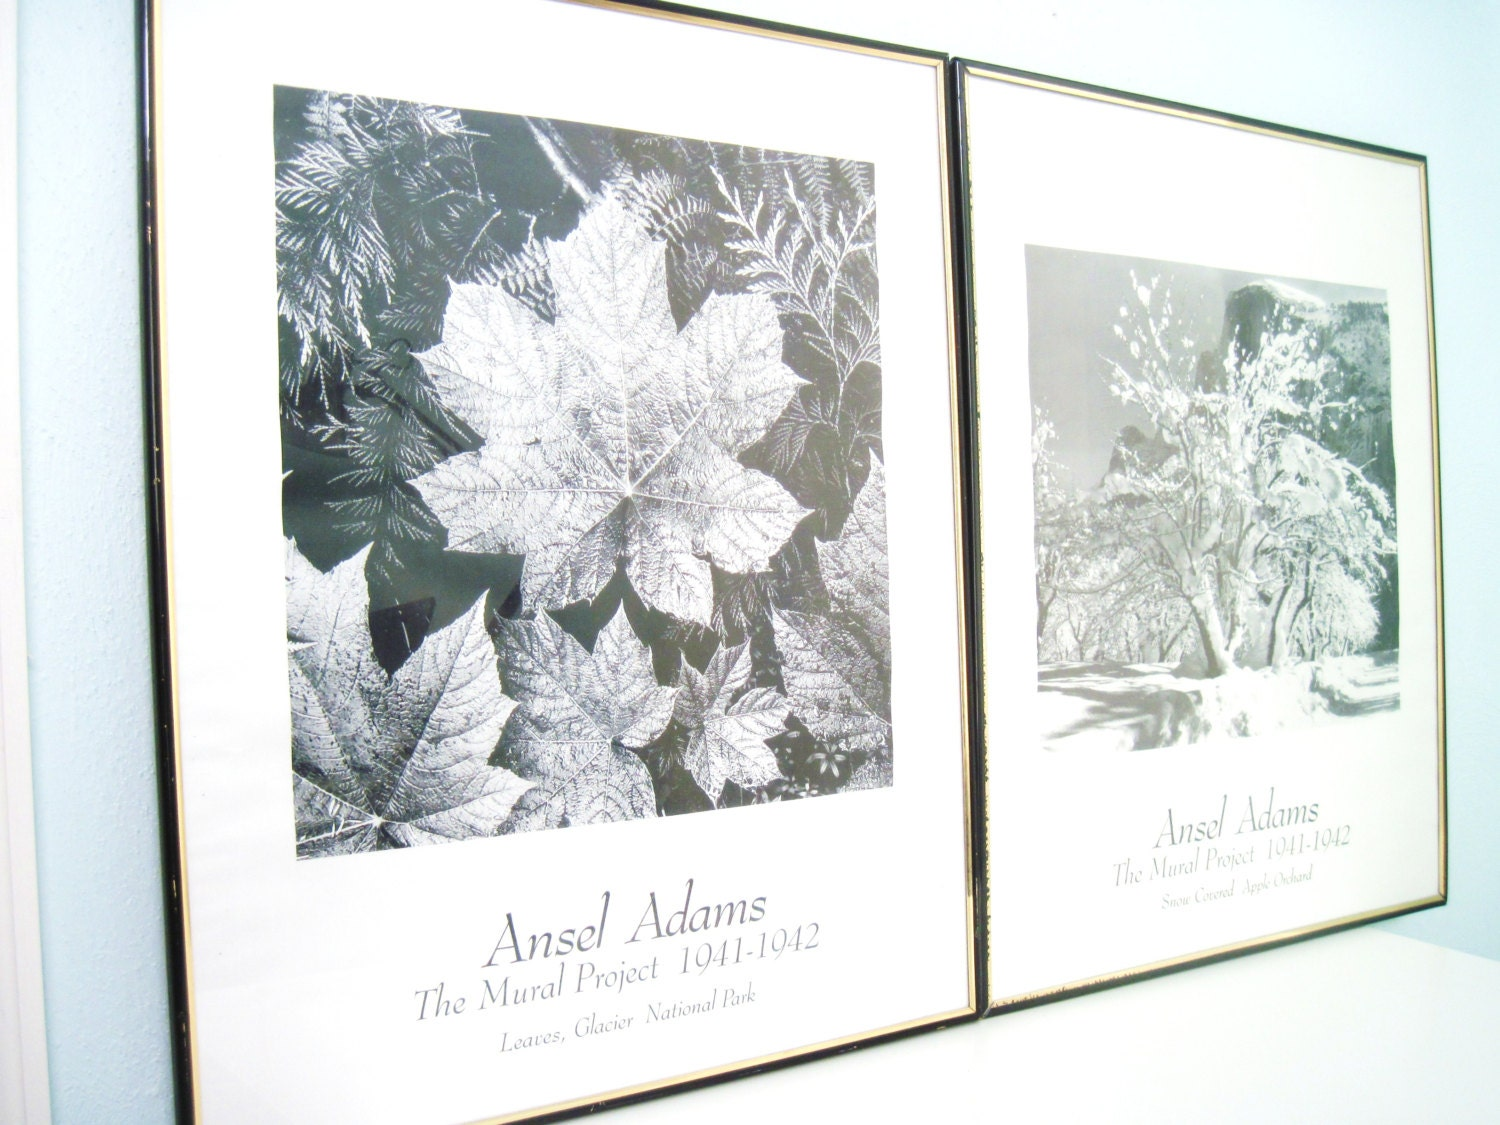 Vintage ansel adams framed photography by planetfriendlygoods for Ansel adams the mural project prints